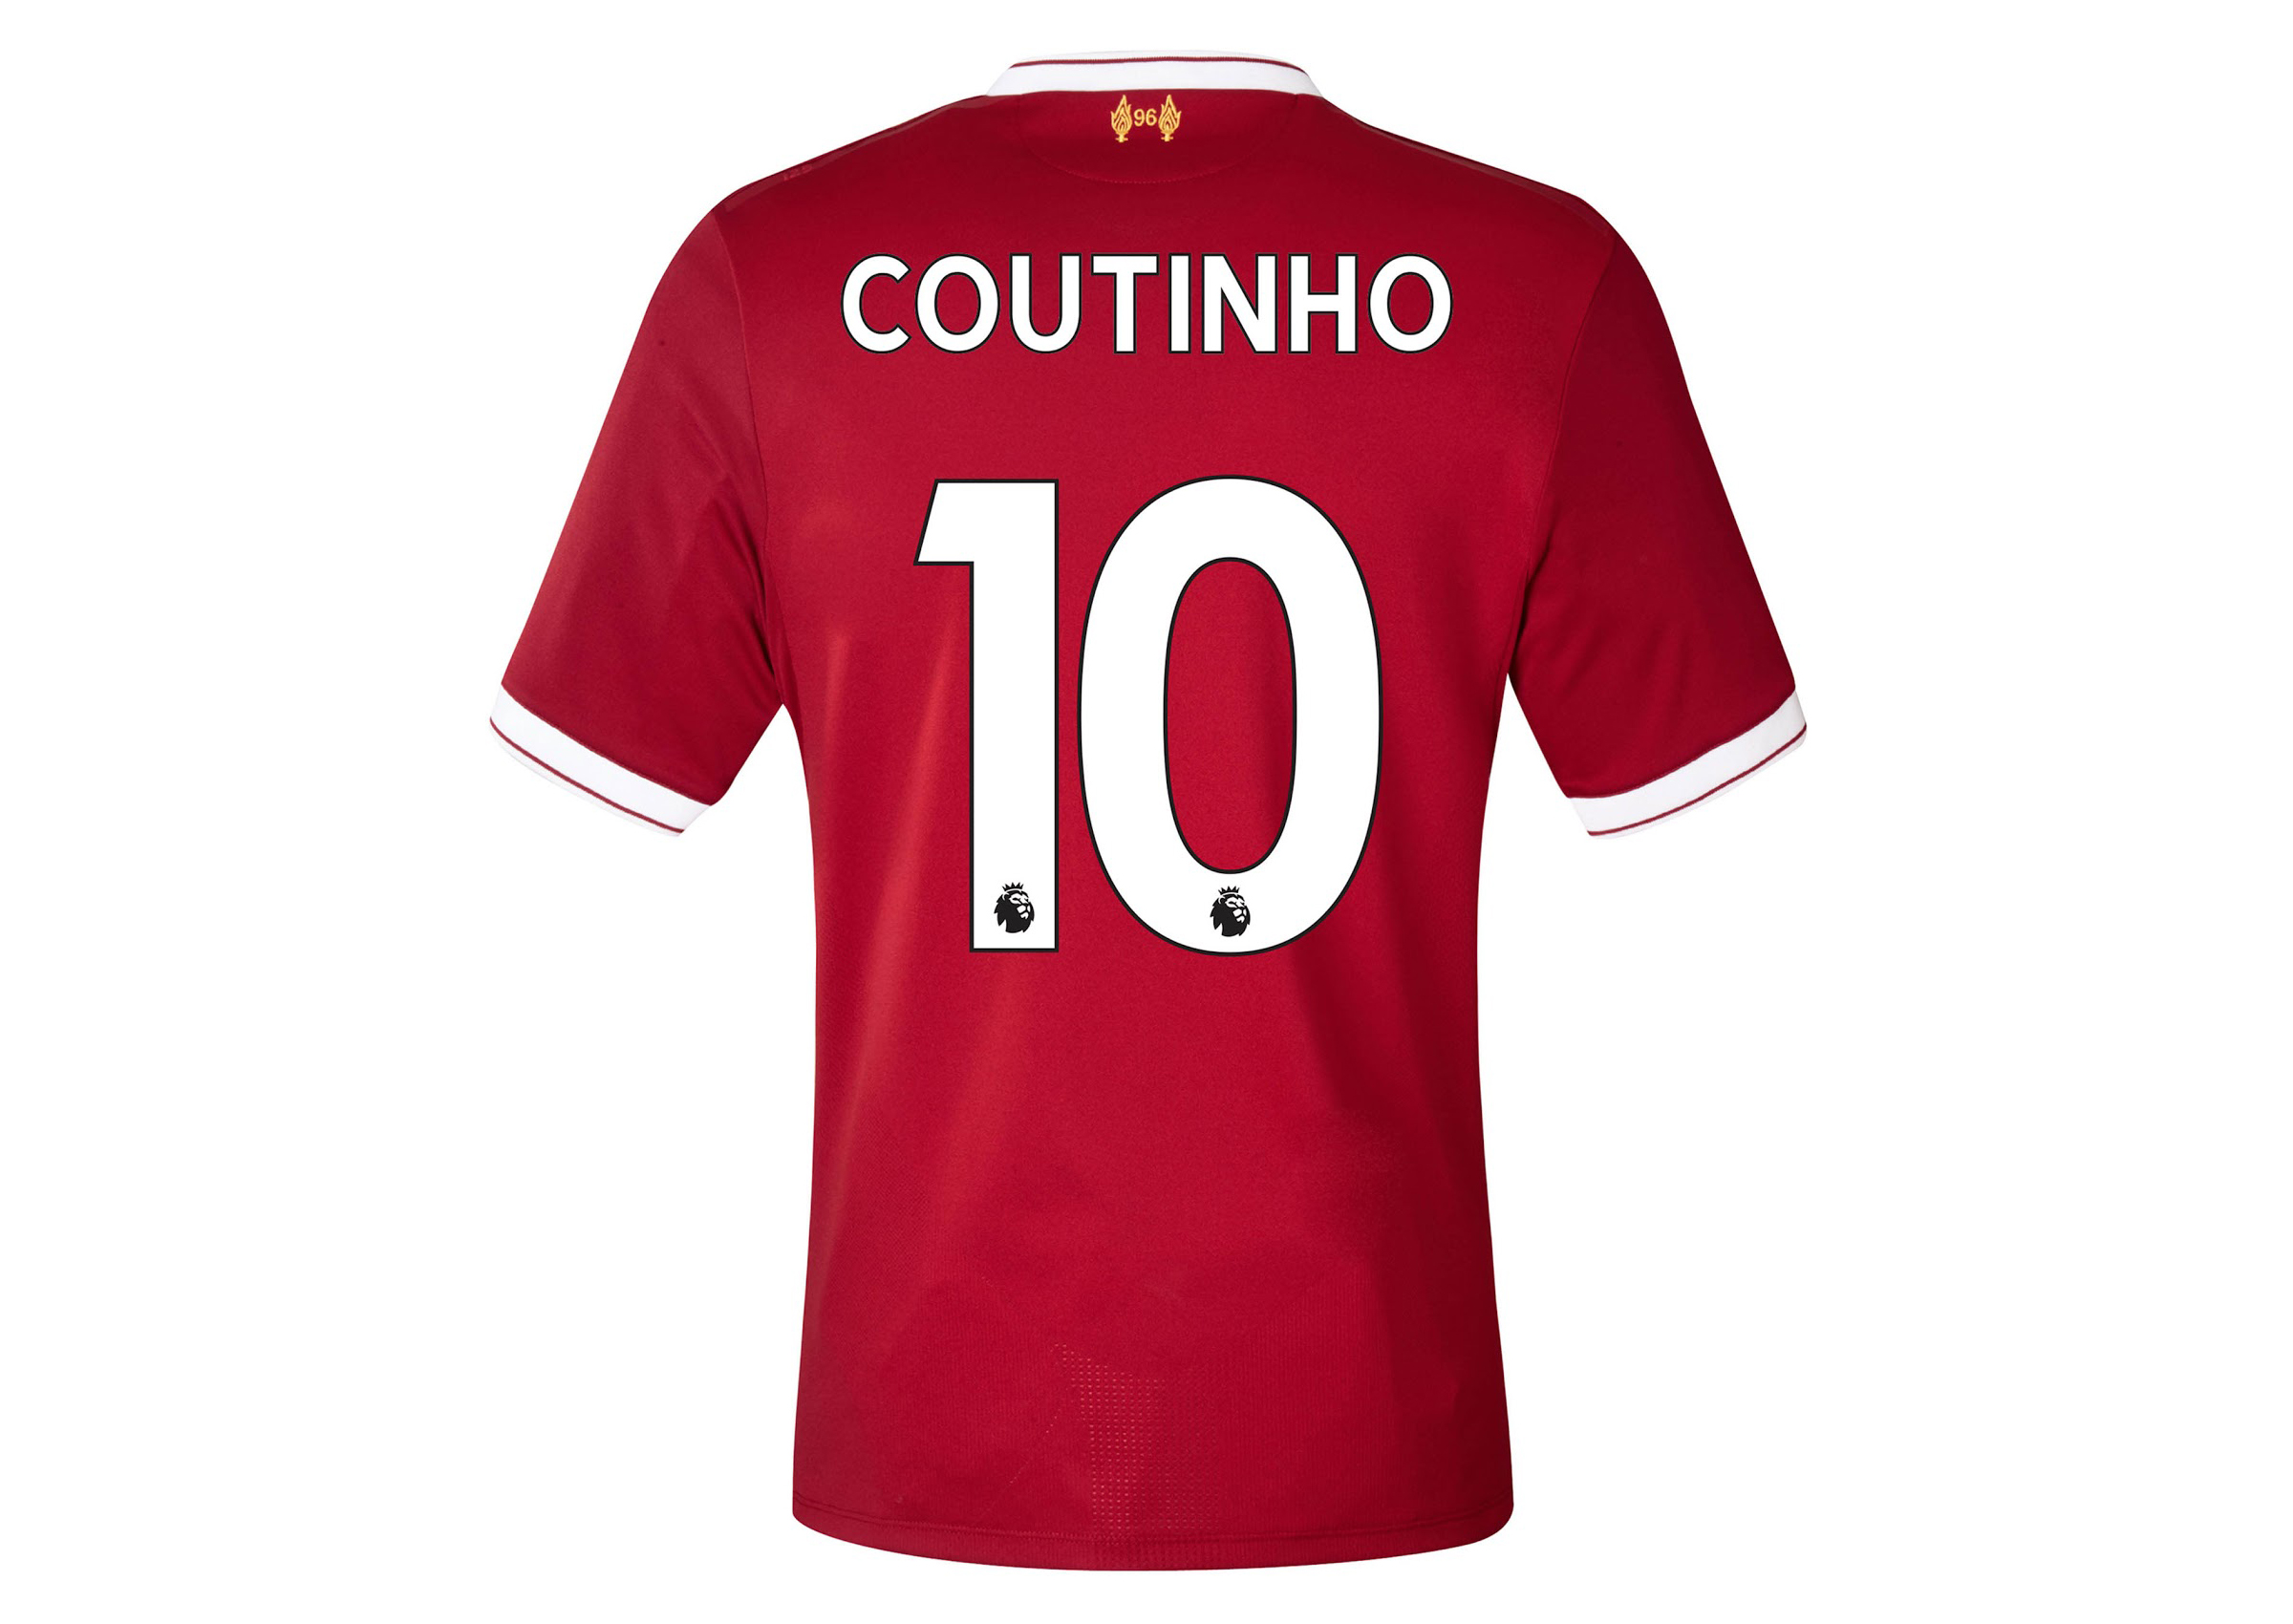 here-is-all-new-2017-18-premier-league-font-on-the-new-liverpool-kit (5)